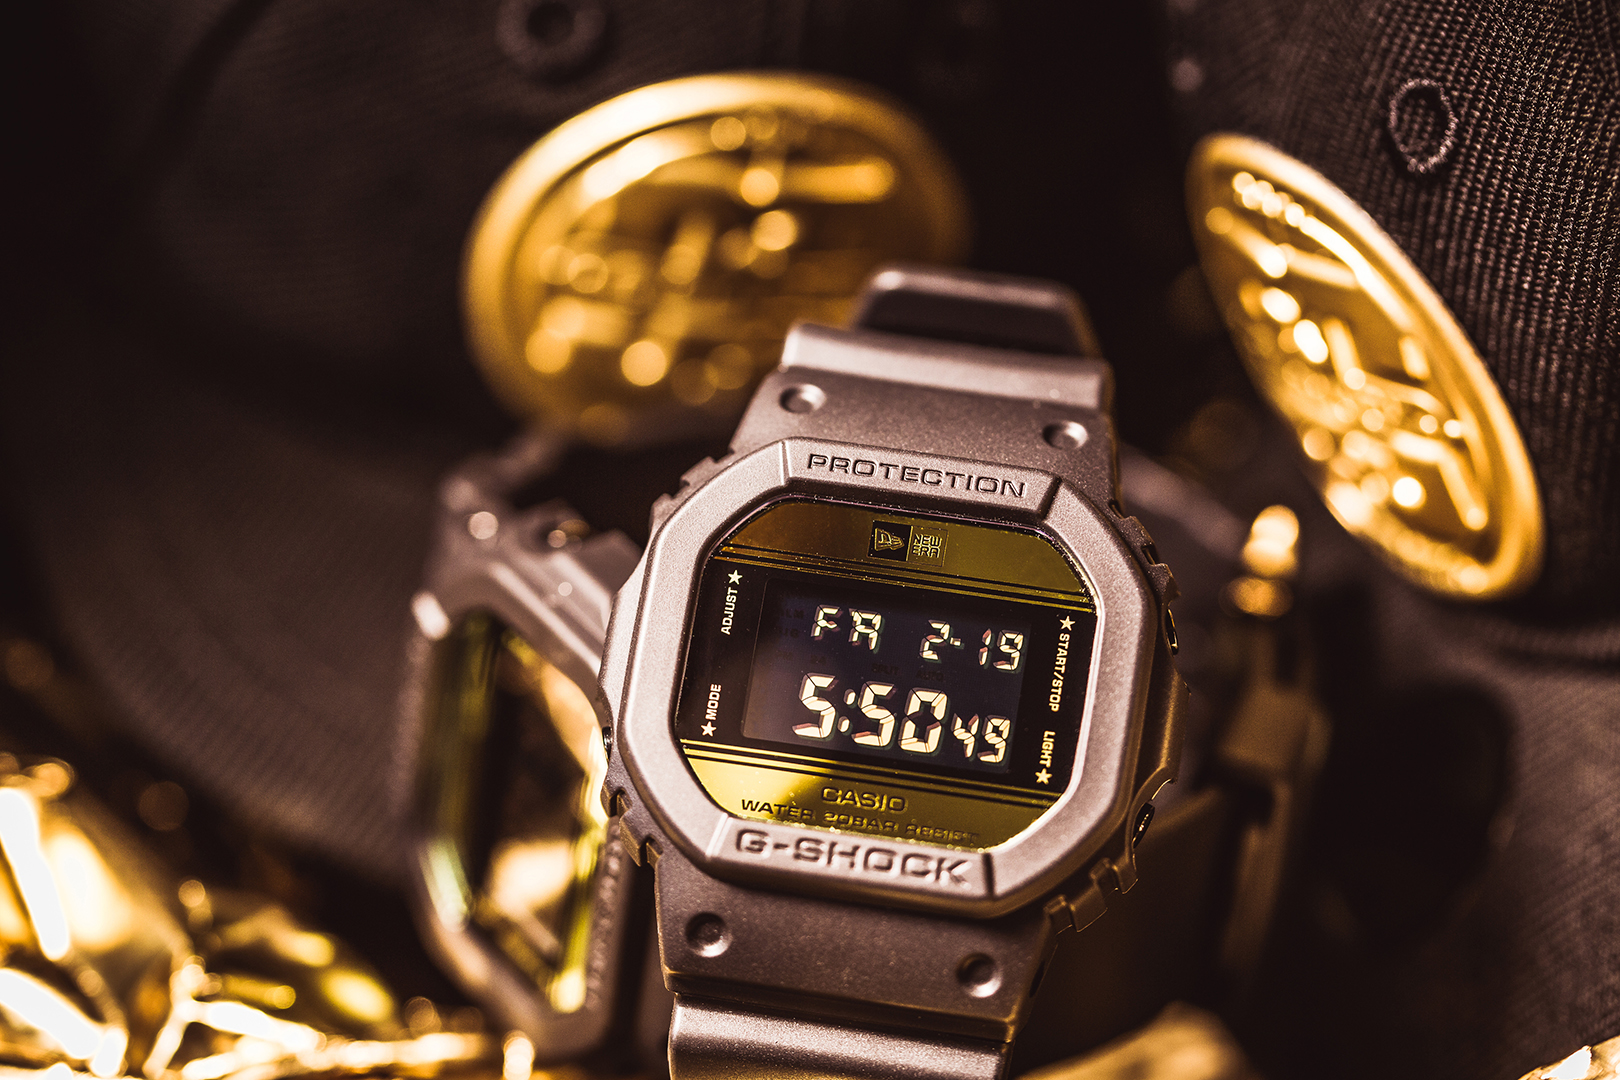 casio-dw-5600ne-1er-g-shock-new-era-12